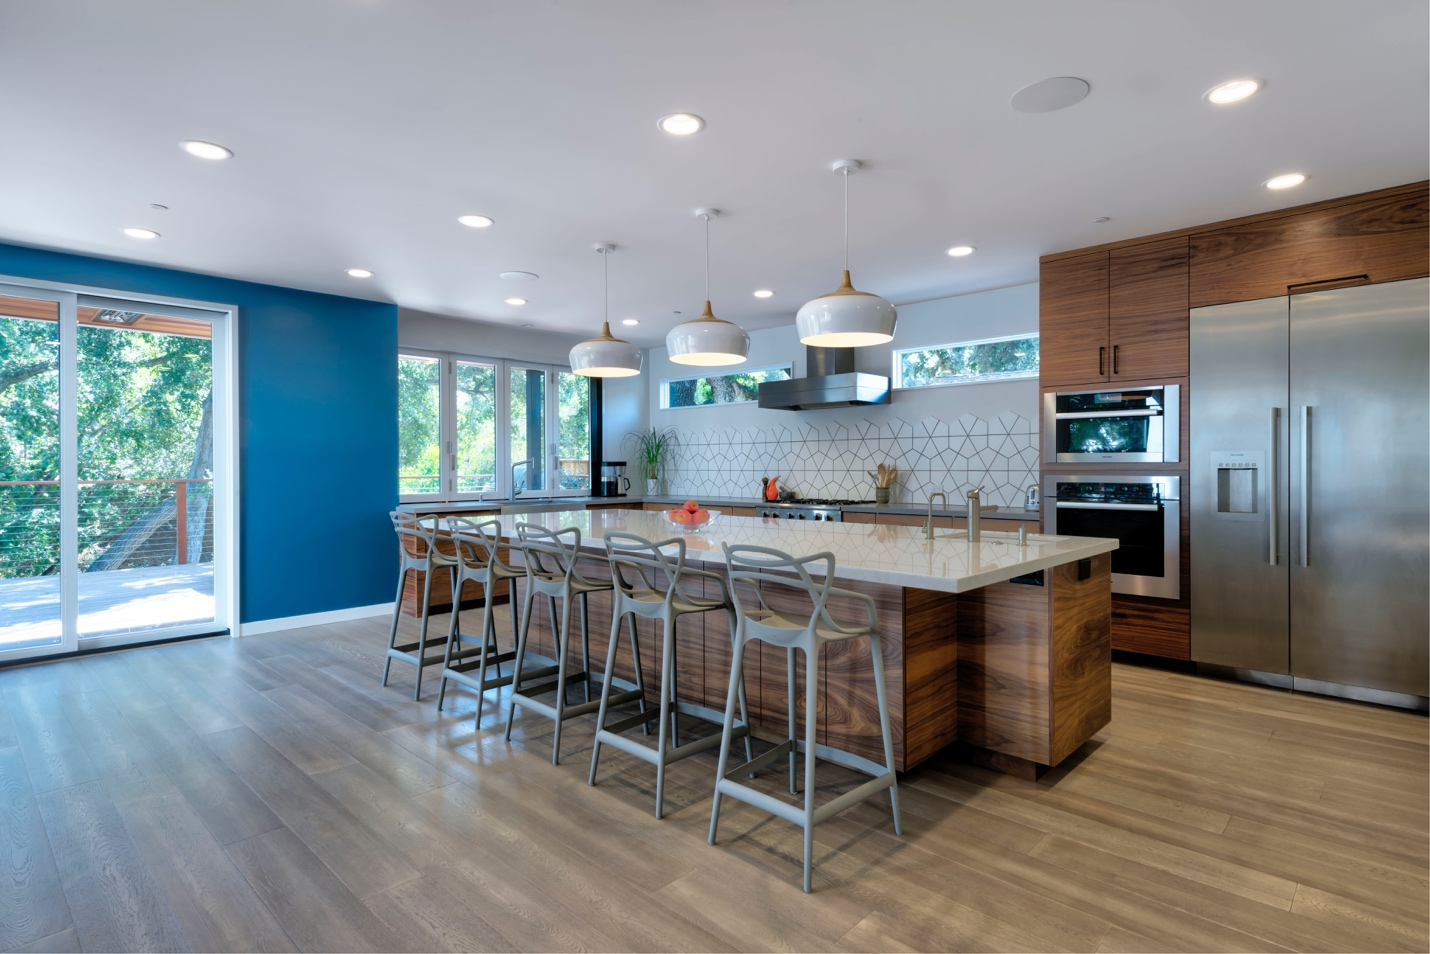 Mdesignarchitect, kitchen, Dinning design,Los Altos